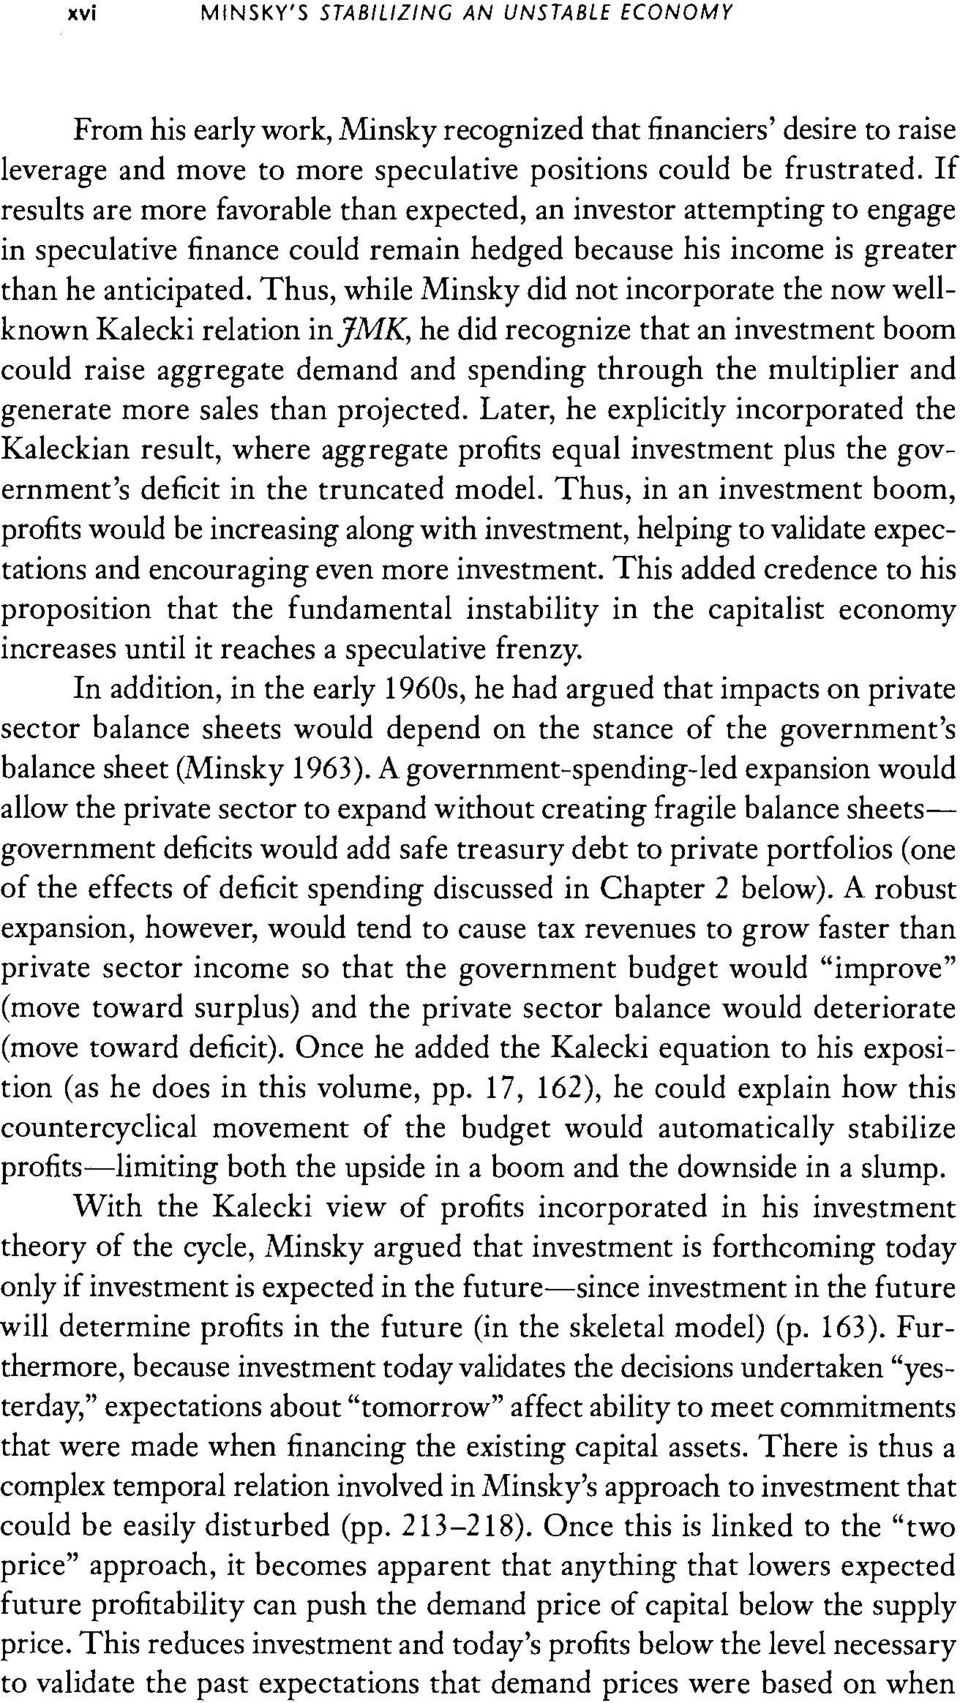 Thus, while Minsky did not incorporate the now wellknown Kalecki relation injmk, he did recognize that an investment boom could raise aggregate demand and spending through the multiplier and generate